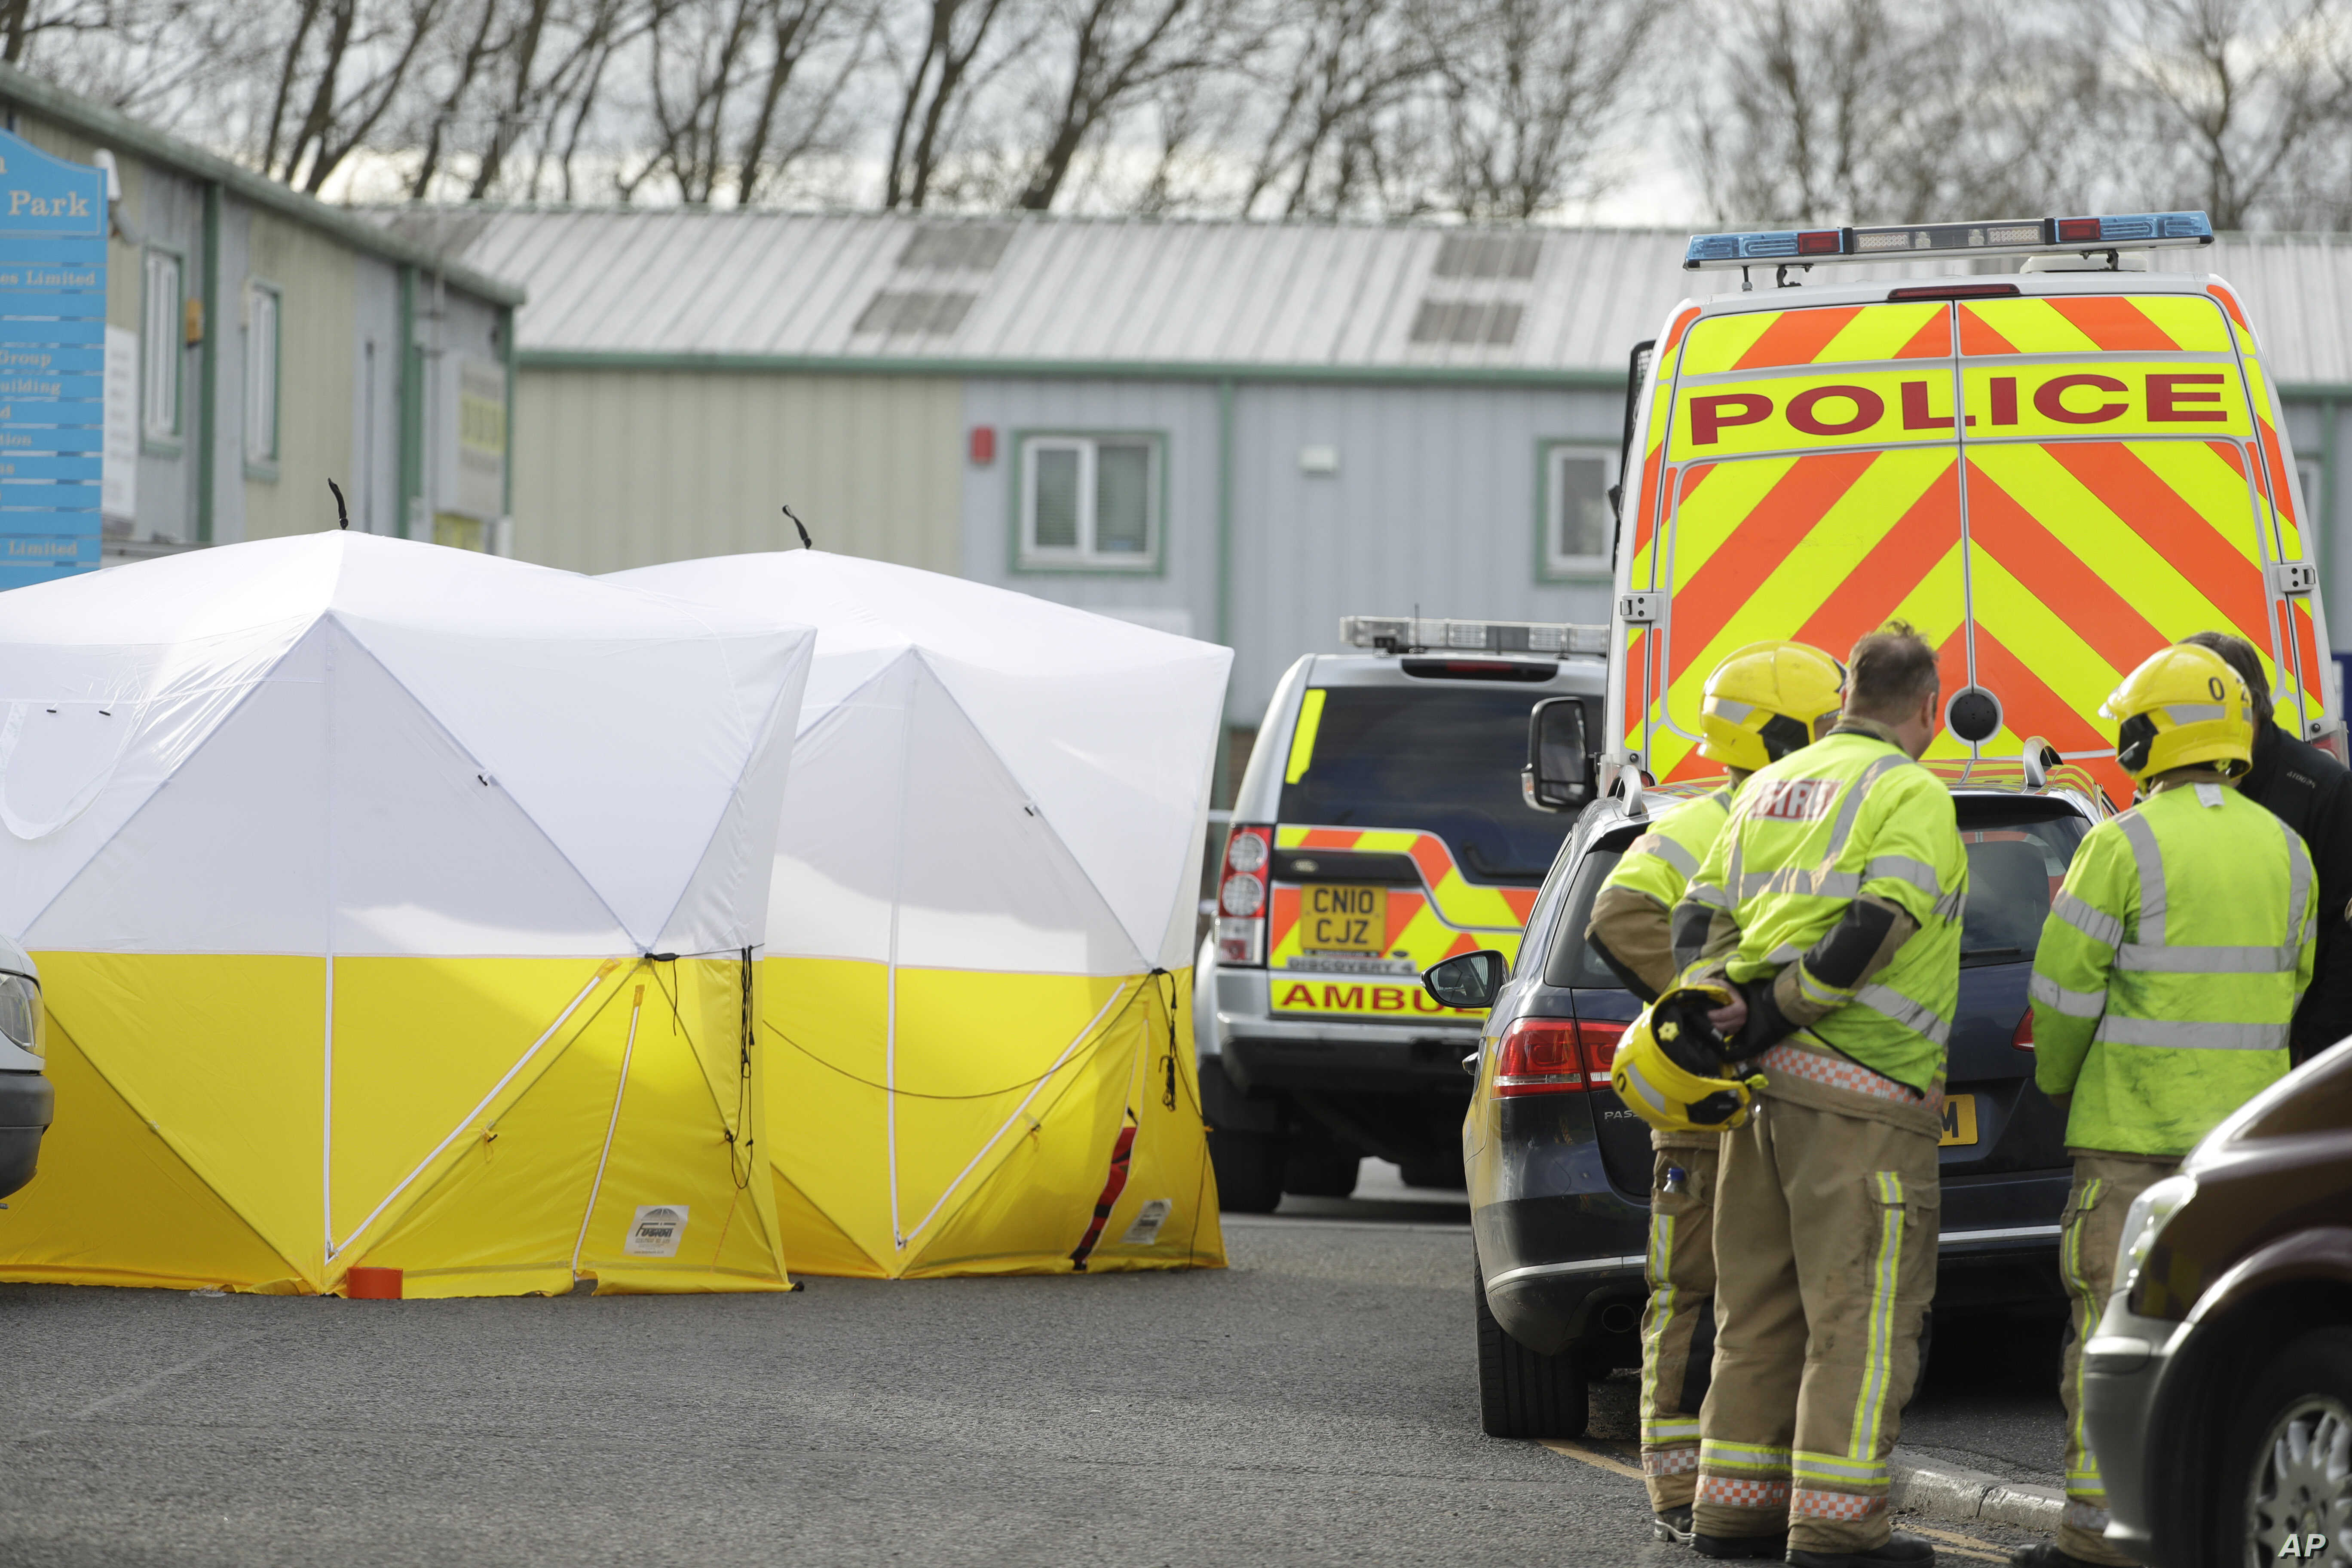 """Fire officers stand inside a cordon at the vehicle recovery business """"Ashley Wood Recovery"""" in Salisbury, England, March 13, 2018."""